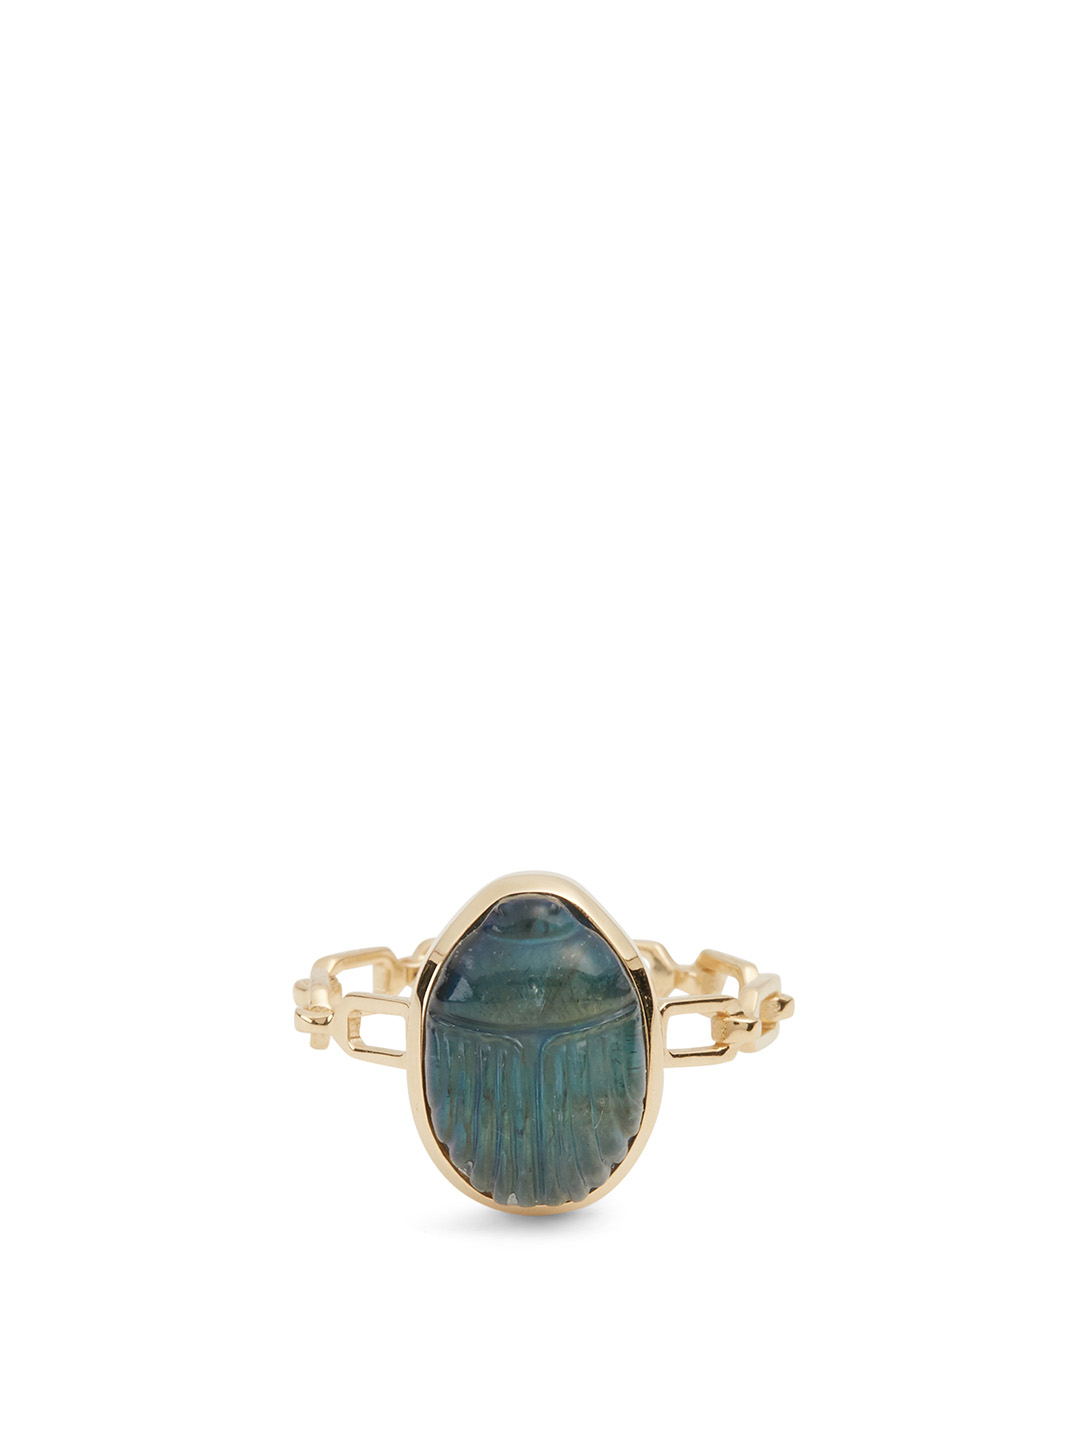 LITO 14K Gold Ring With Labradorite Women's Metallic